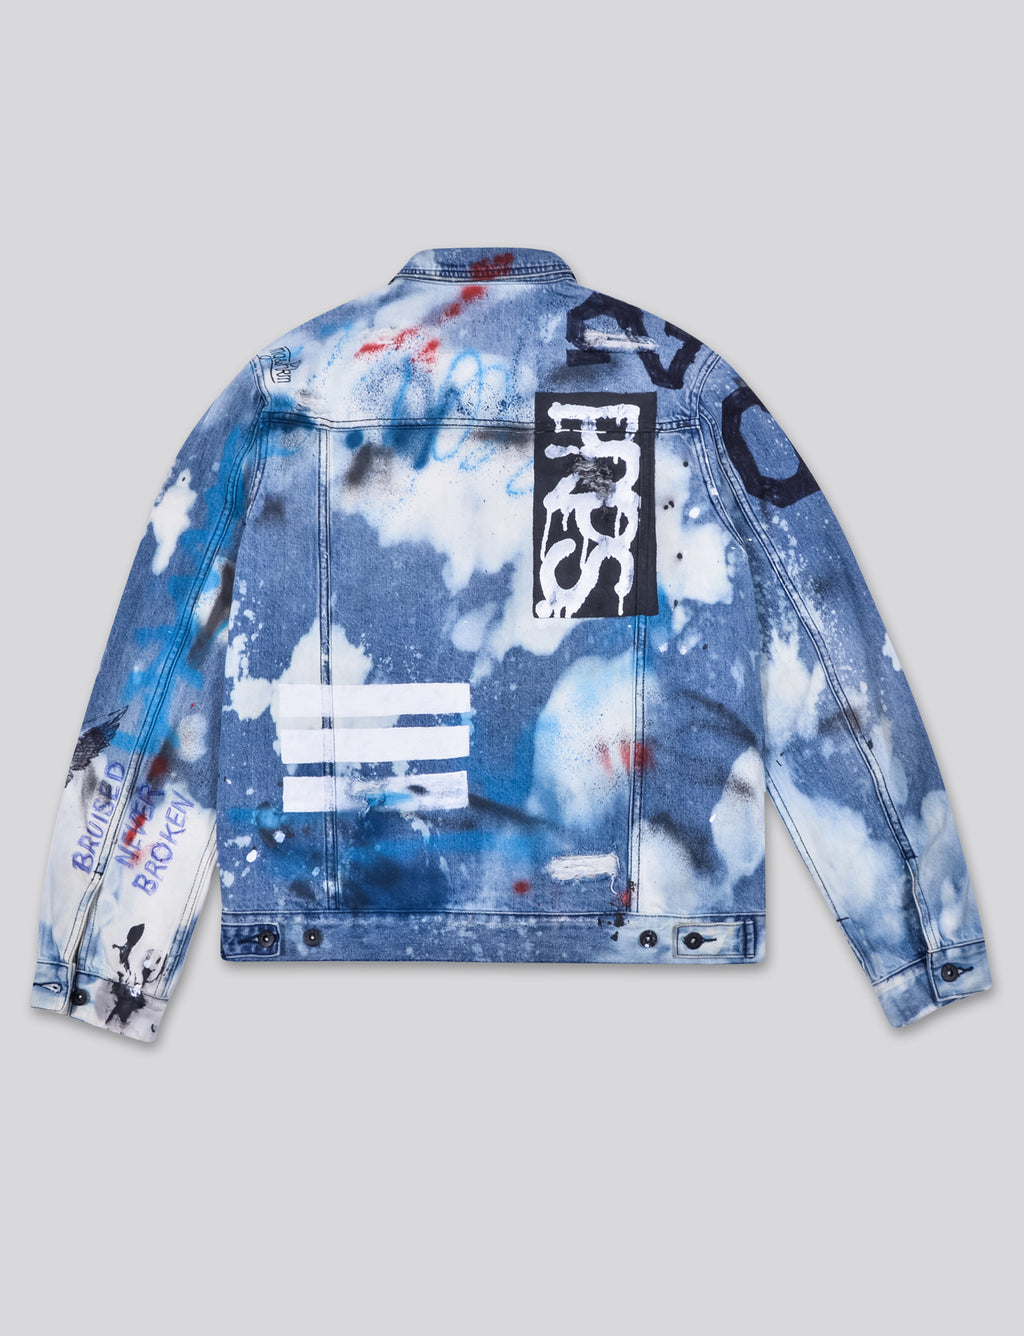 Prps - #4 Hand Painted Logo Denim Jacket - Jacket - Prps